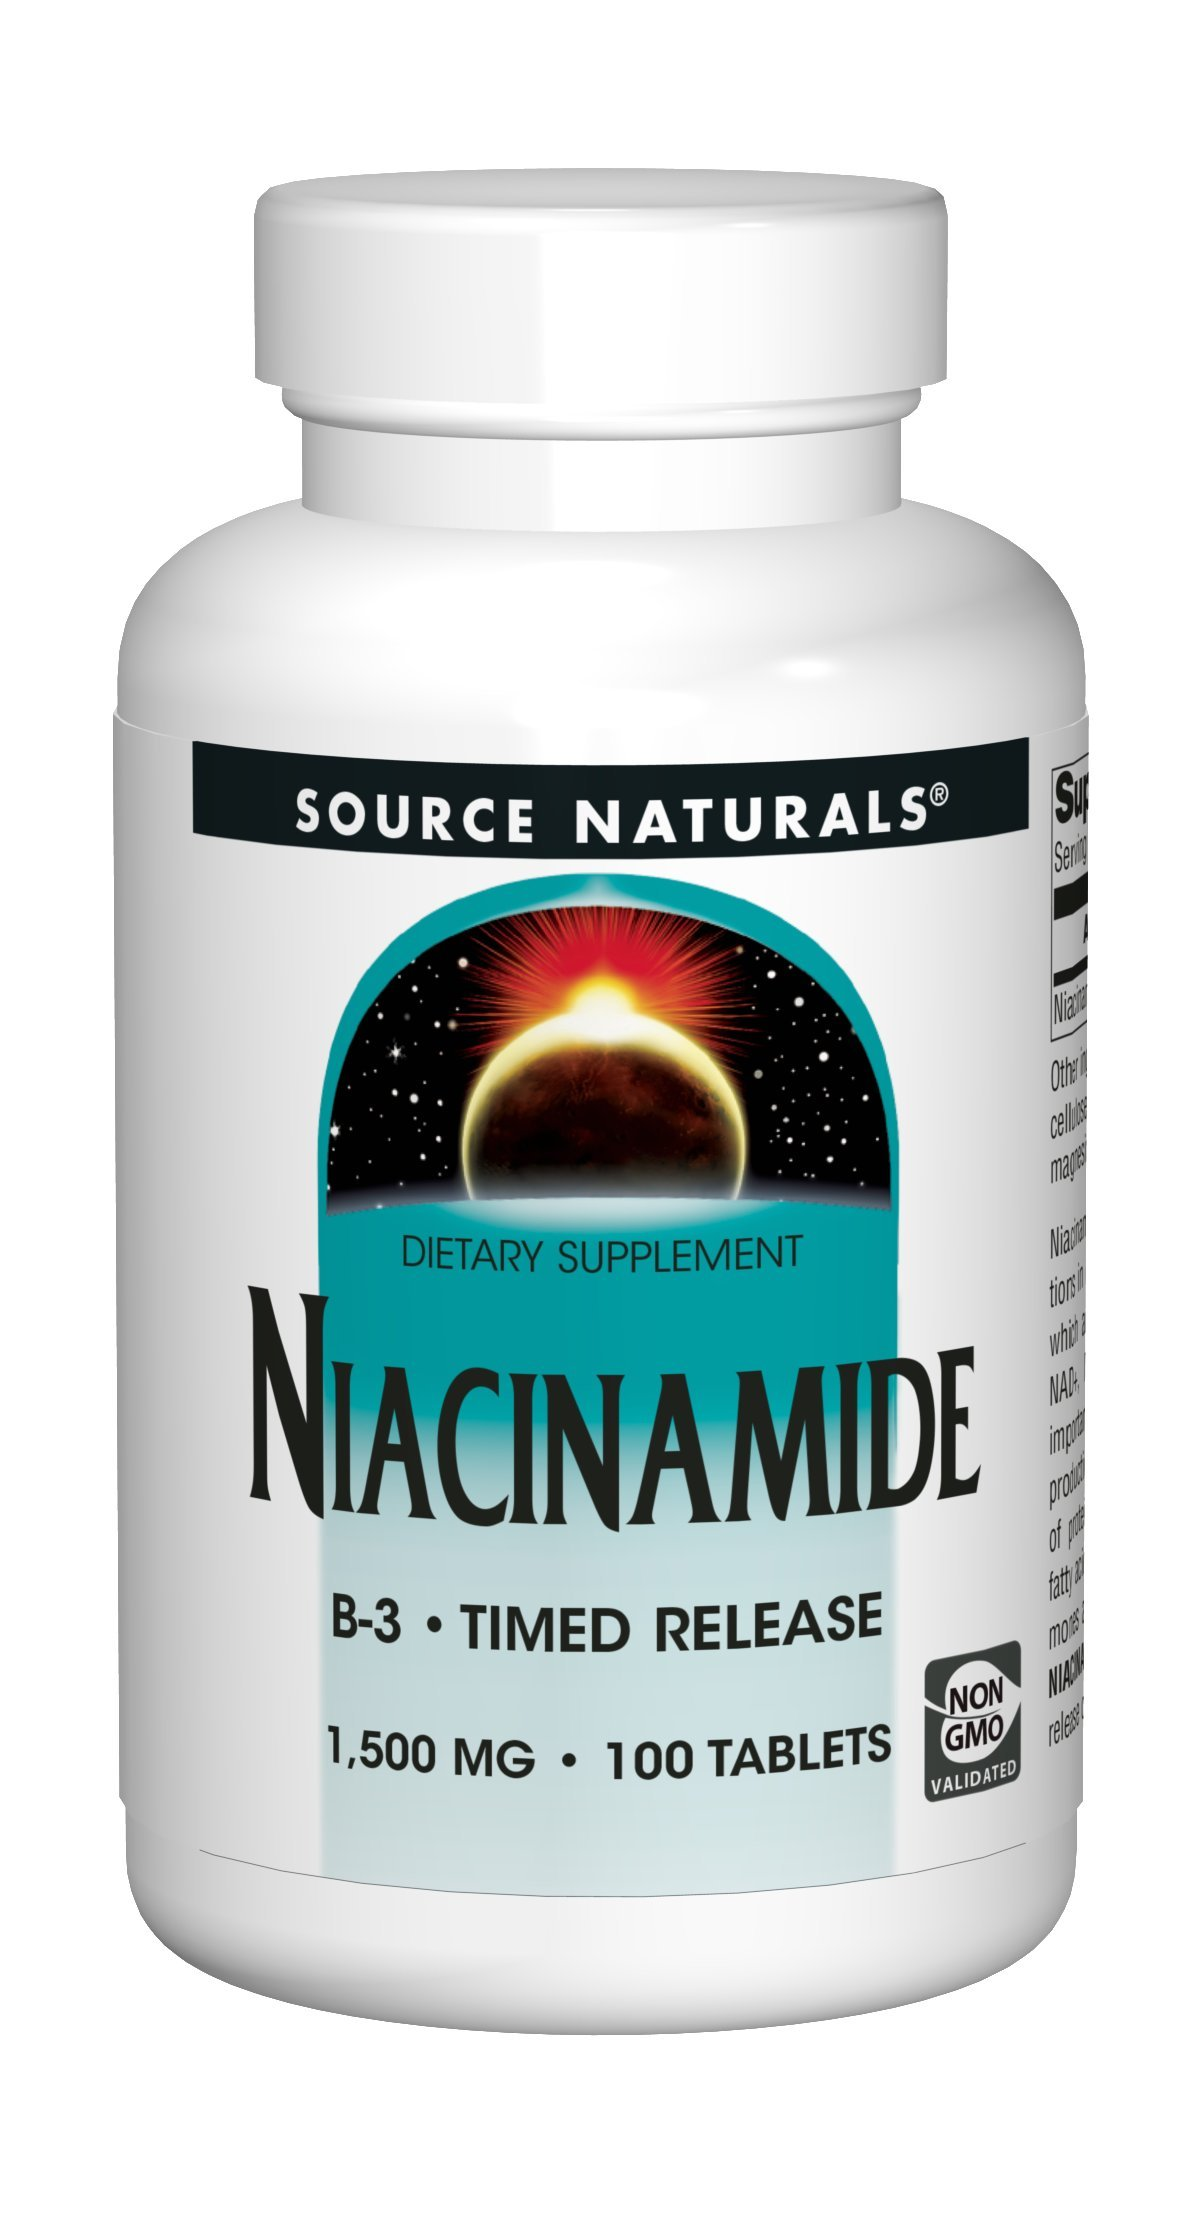 Source Naturals Niacinamide 1500mg Timed Release Vitamin B3 Supplement - Flush Free - 100 Tablets